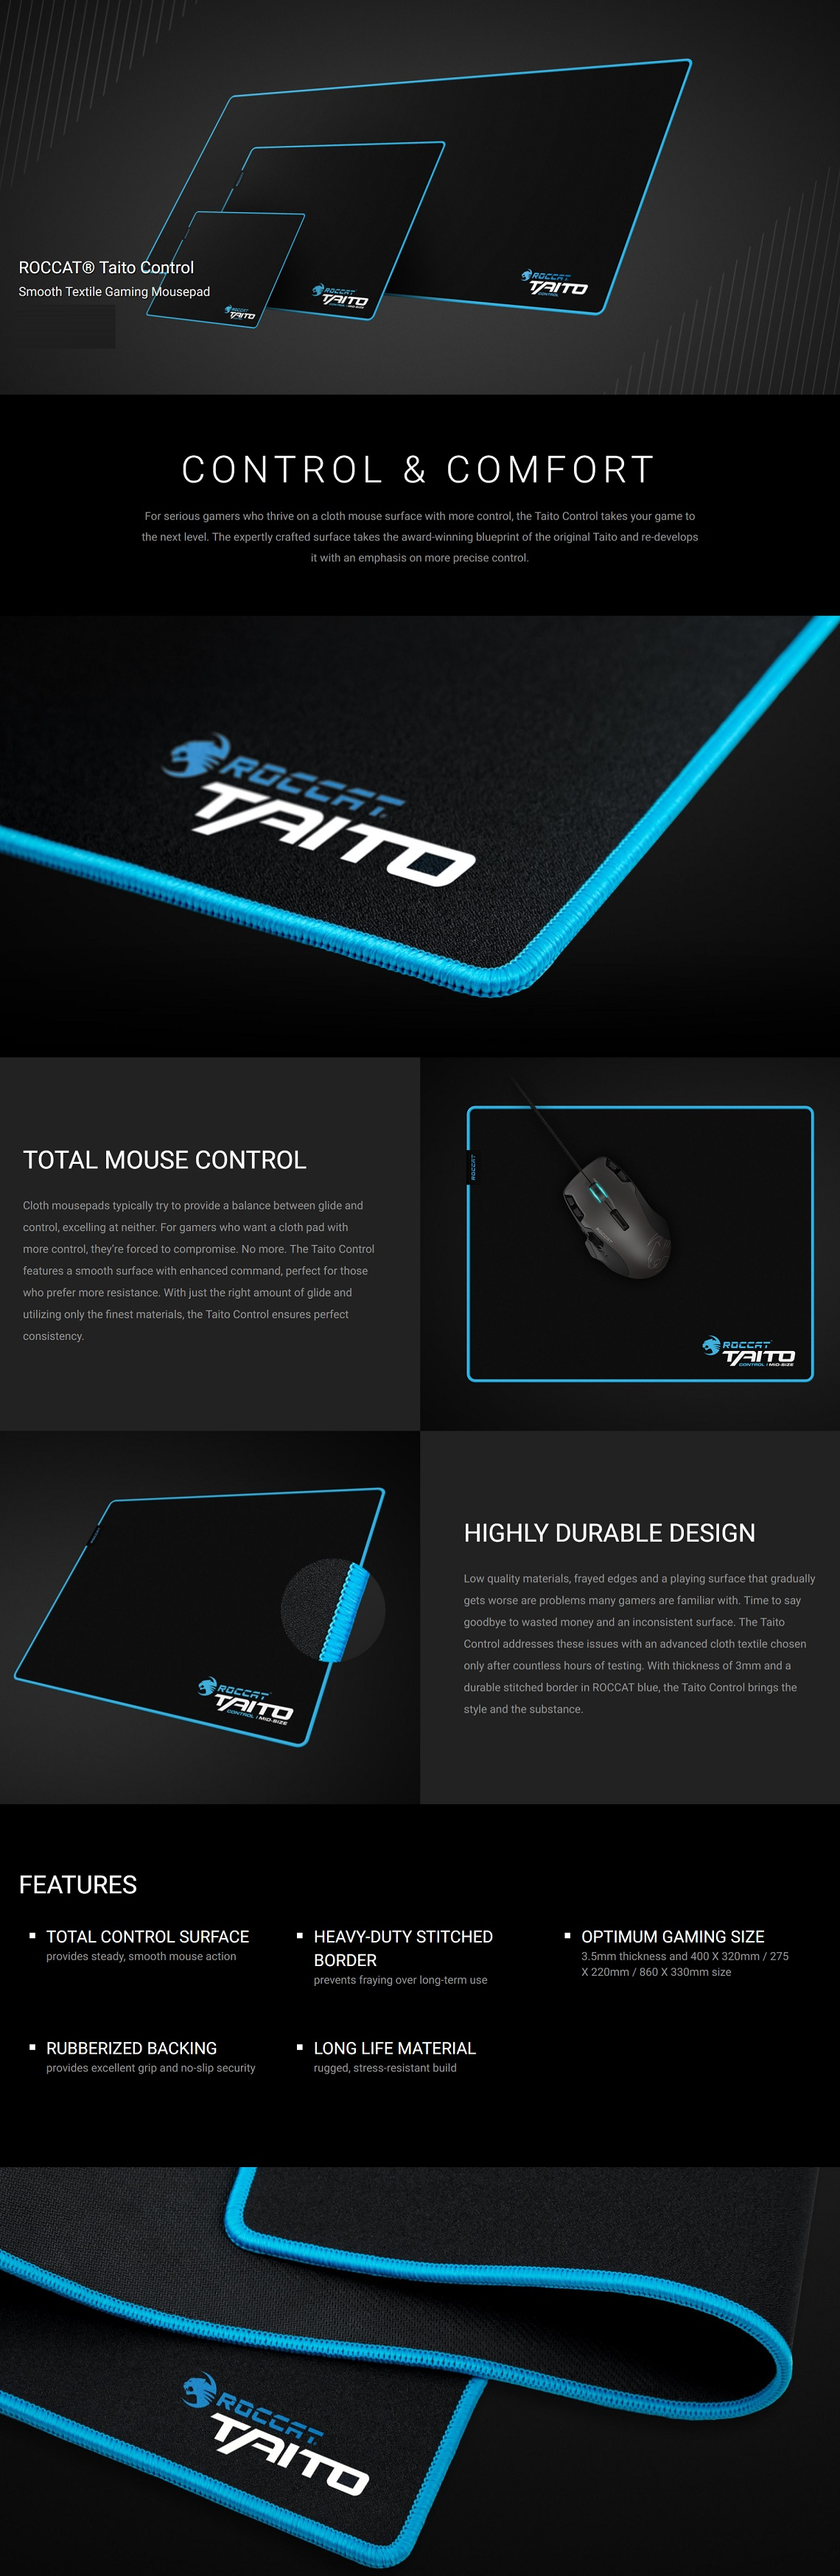 Roccat Taito Control Mid-Size Mousepad Smooth Textile Gaming Mousepad Shiny Black